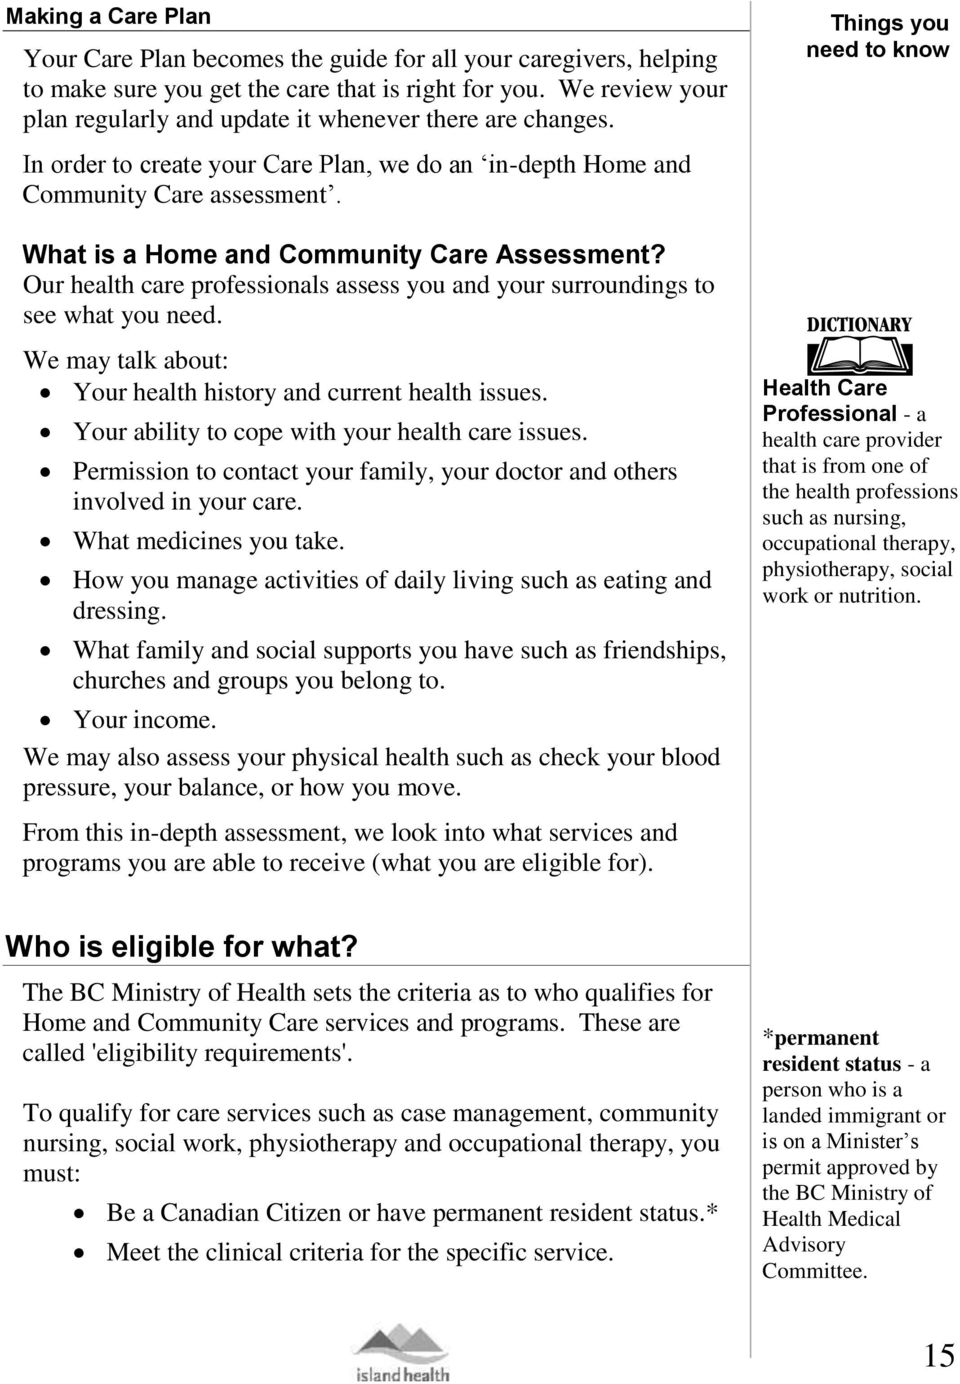 Things you need to know What is a Home and Community Care Assessment? Our health care professionals assess you and your surroundings to see what you need.